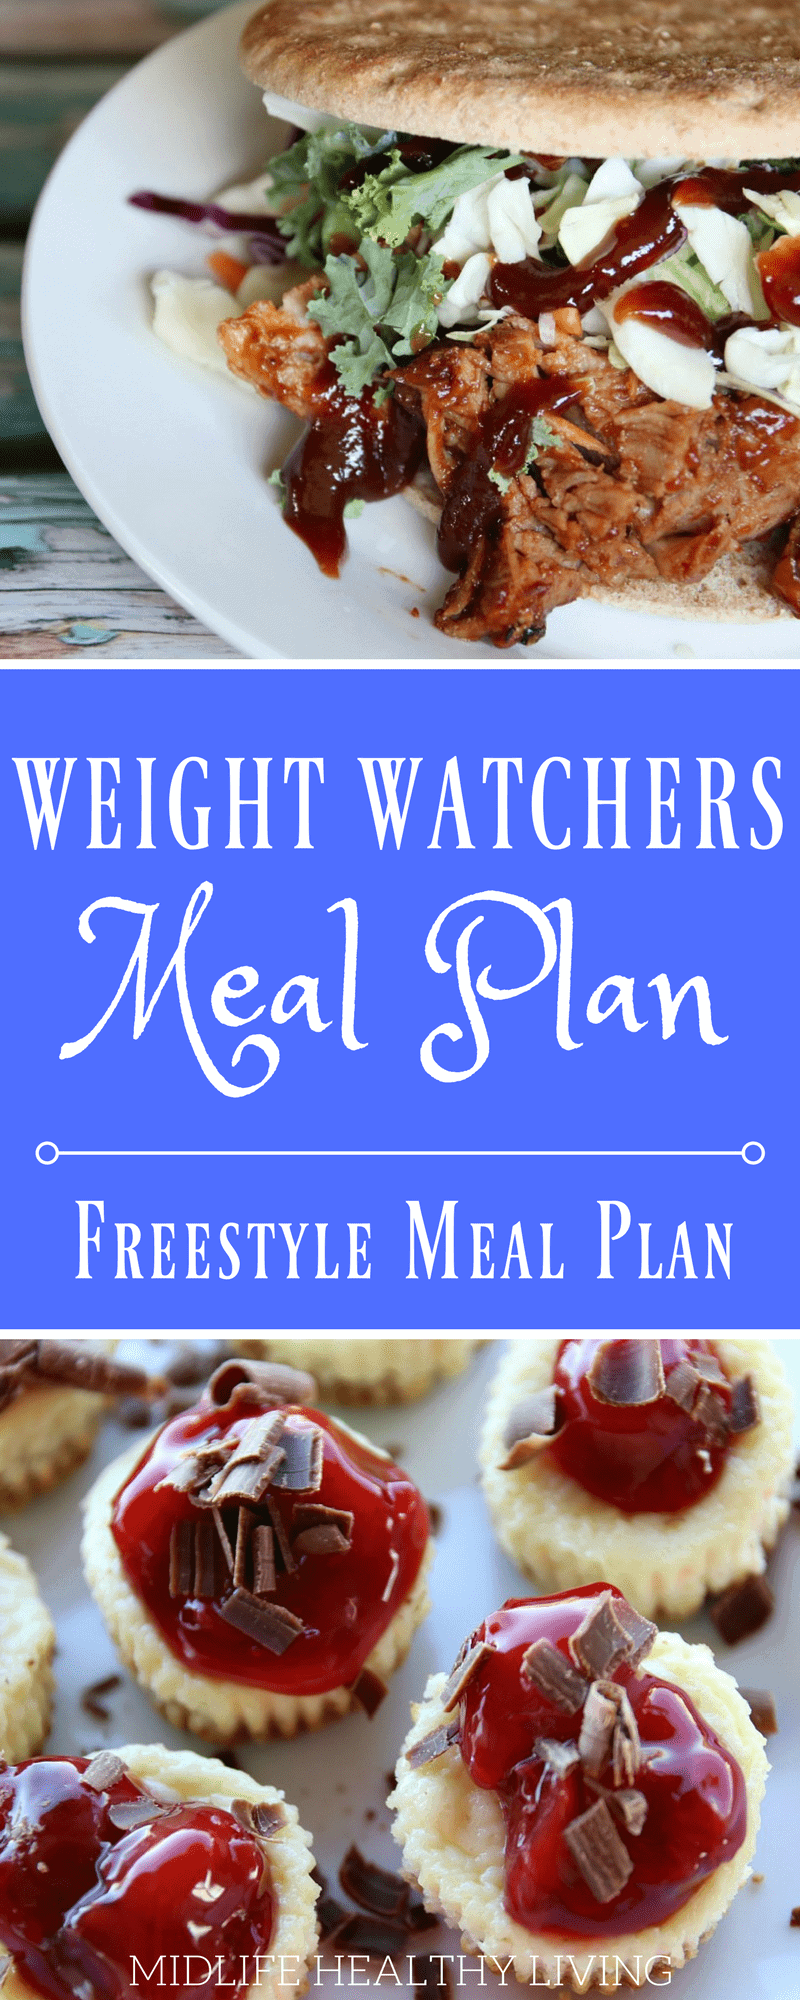 One of the things that has helped me see success is a Weight Watchers meal plan. Meal plans are a great way to keep track of your points before you eat them! I like knowing how many points I'll need to get through my day.